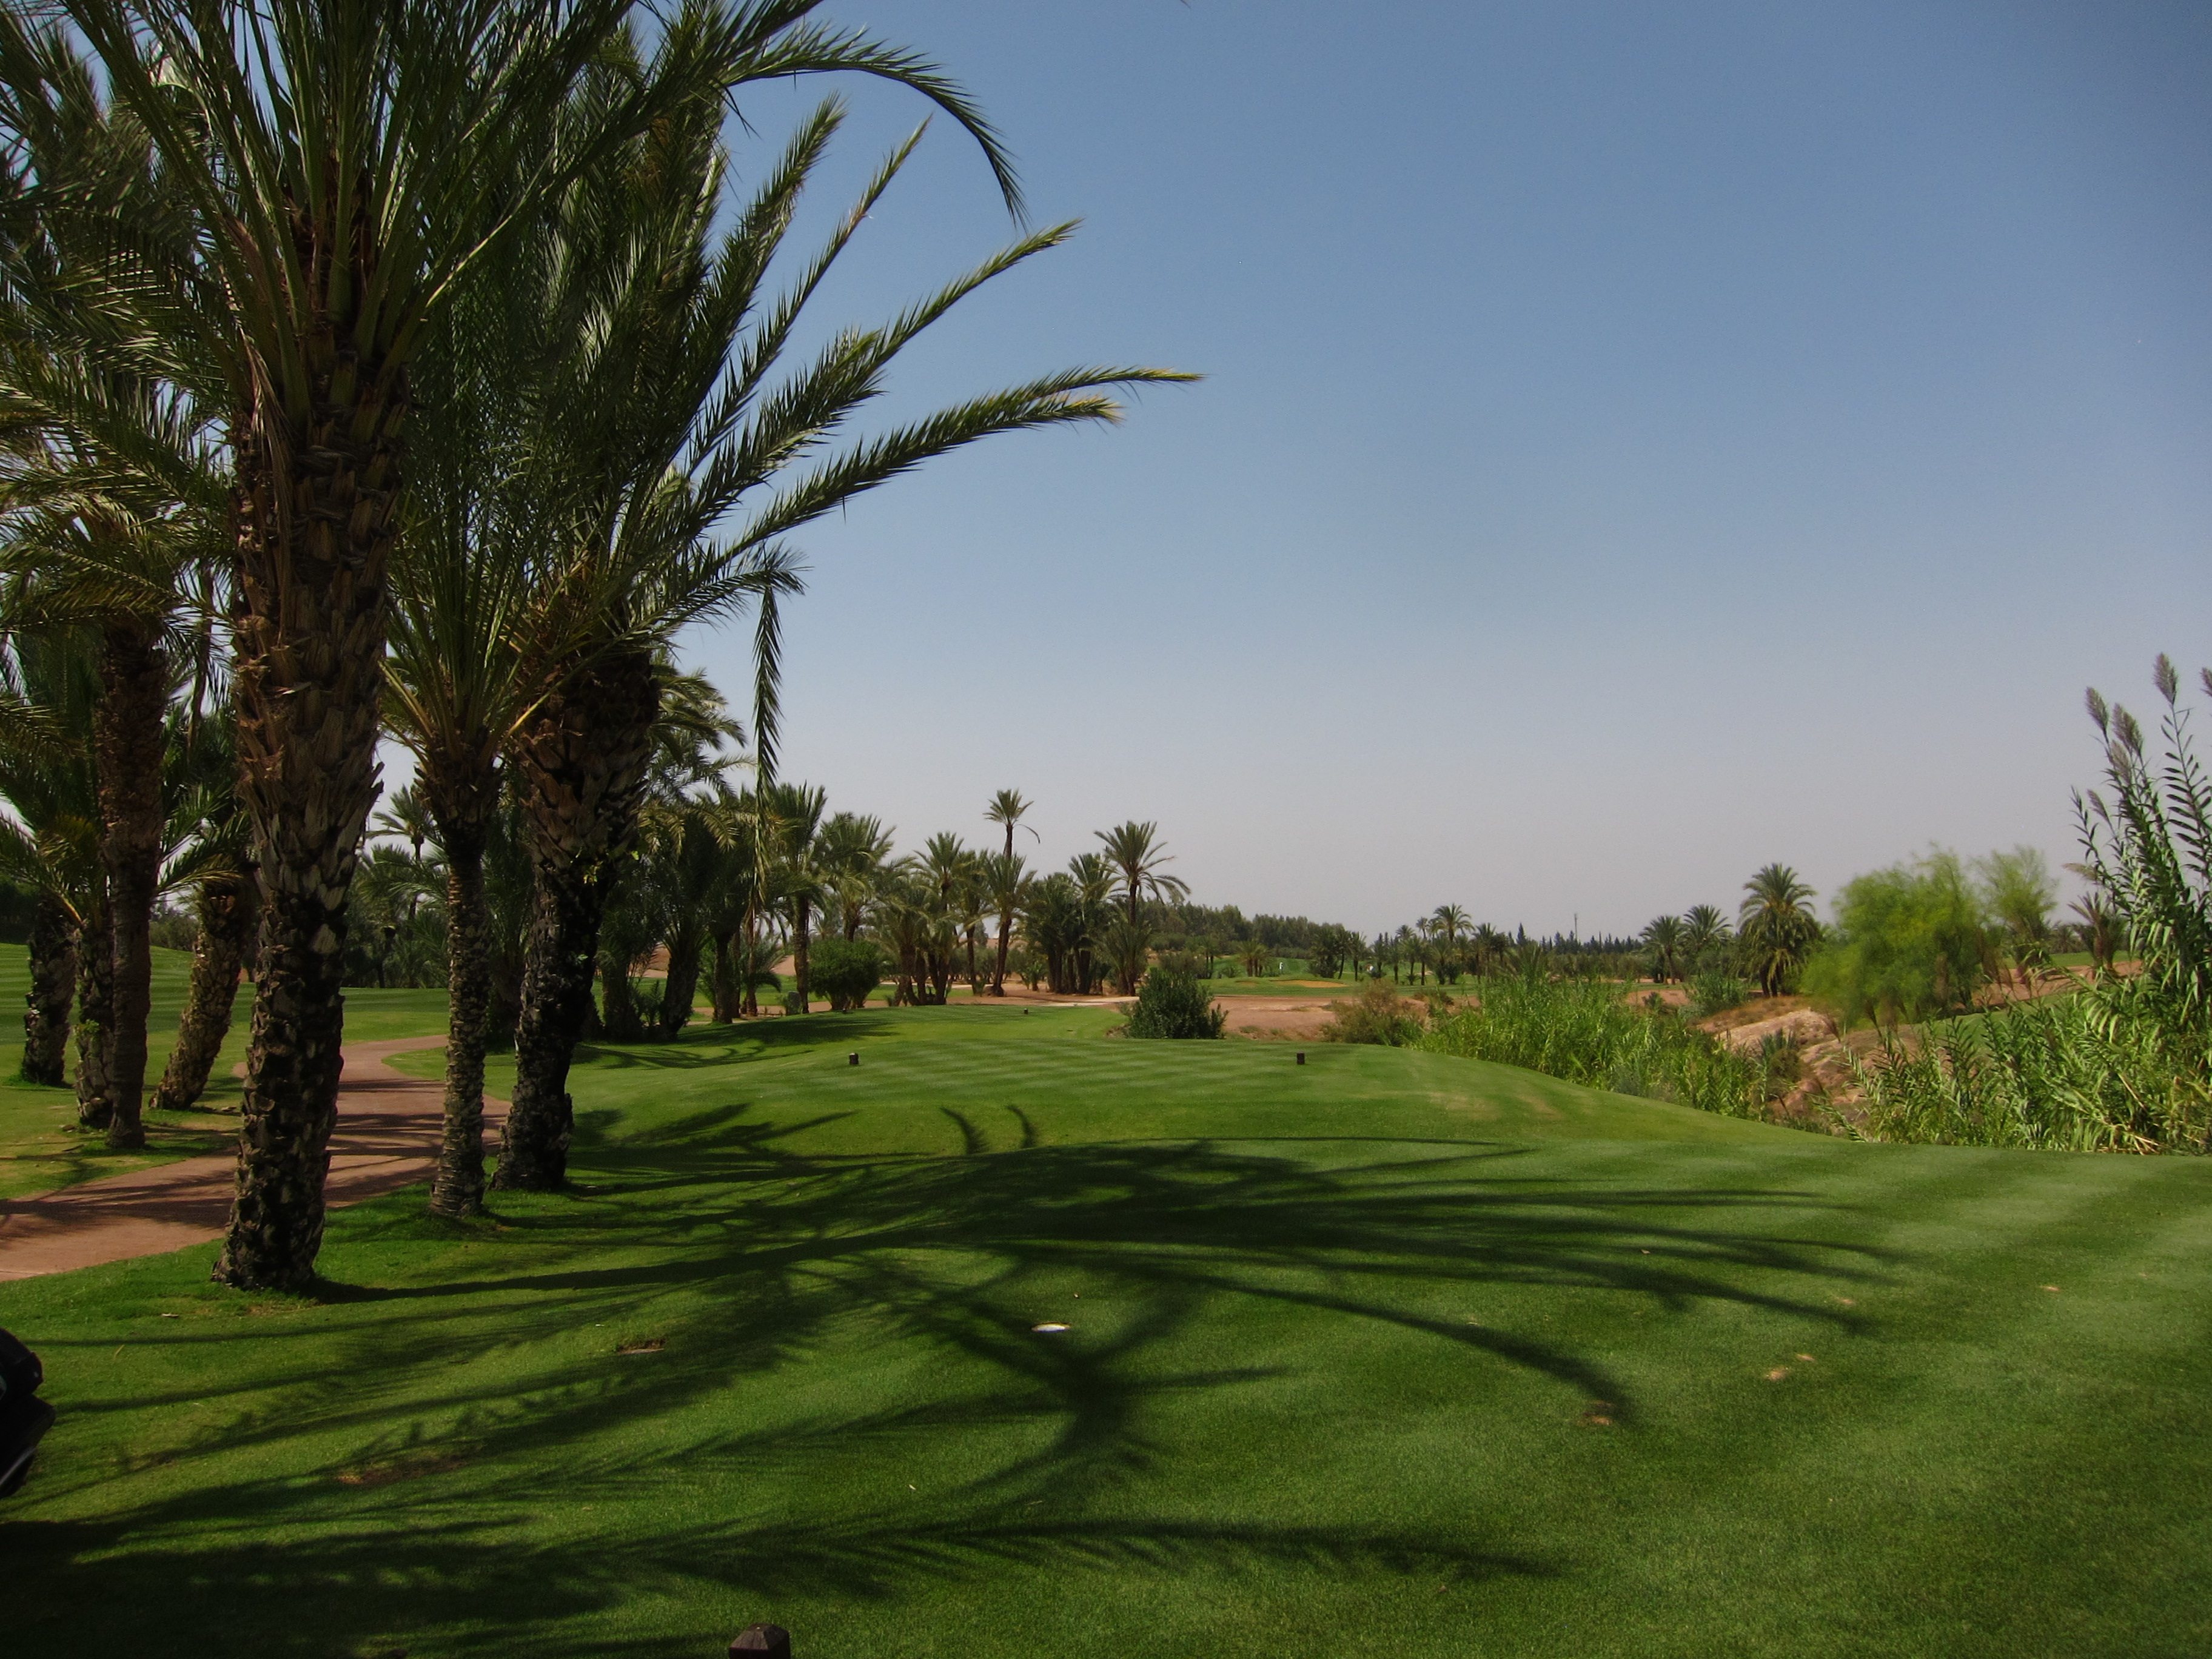 Tee shots on 15 need to carry the corner of the dry river bed